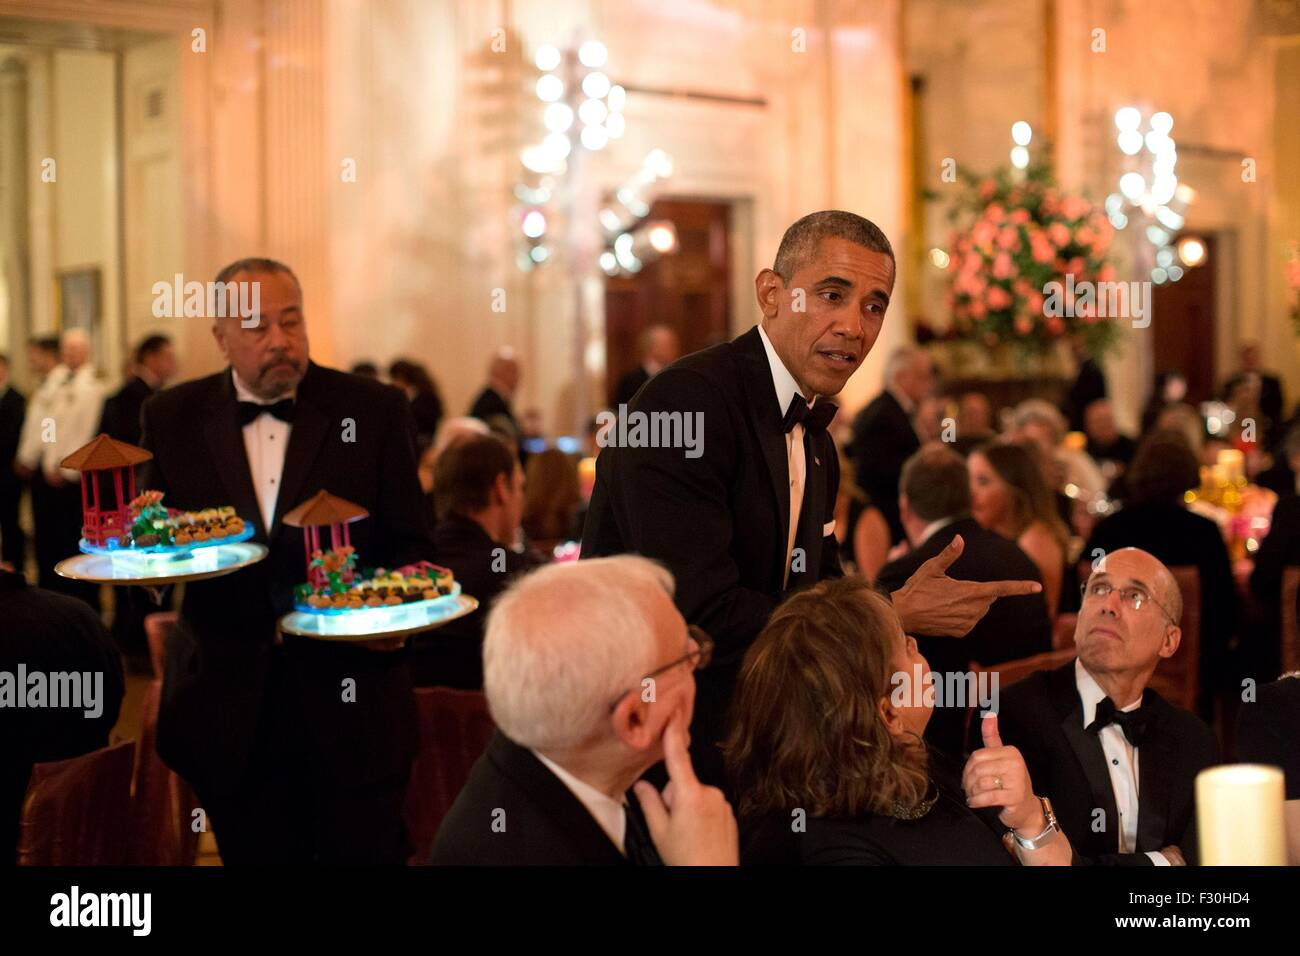 Washington DC, US. 25th Sep, 2015. U.S. President Barack Obama talks with guests during the State Dinner for Chinese - Stock Image